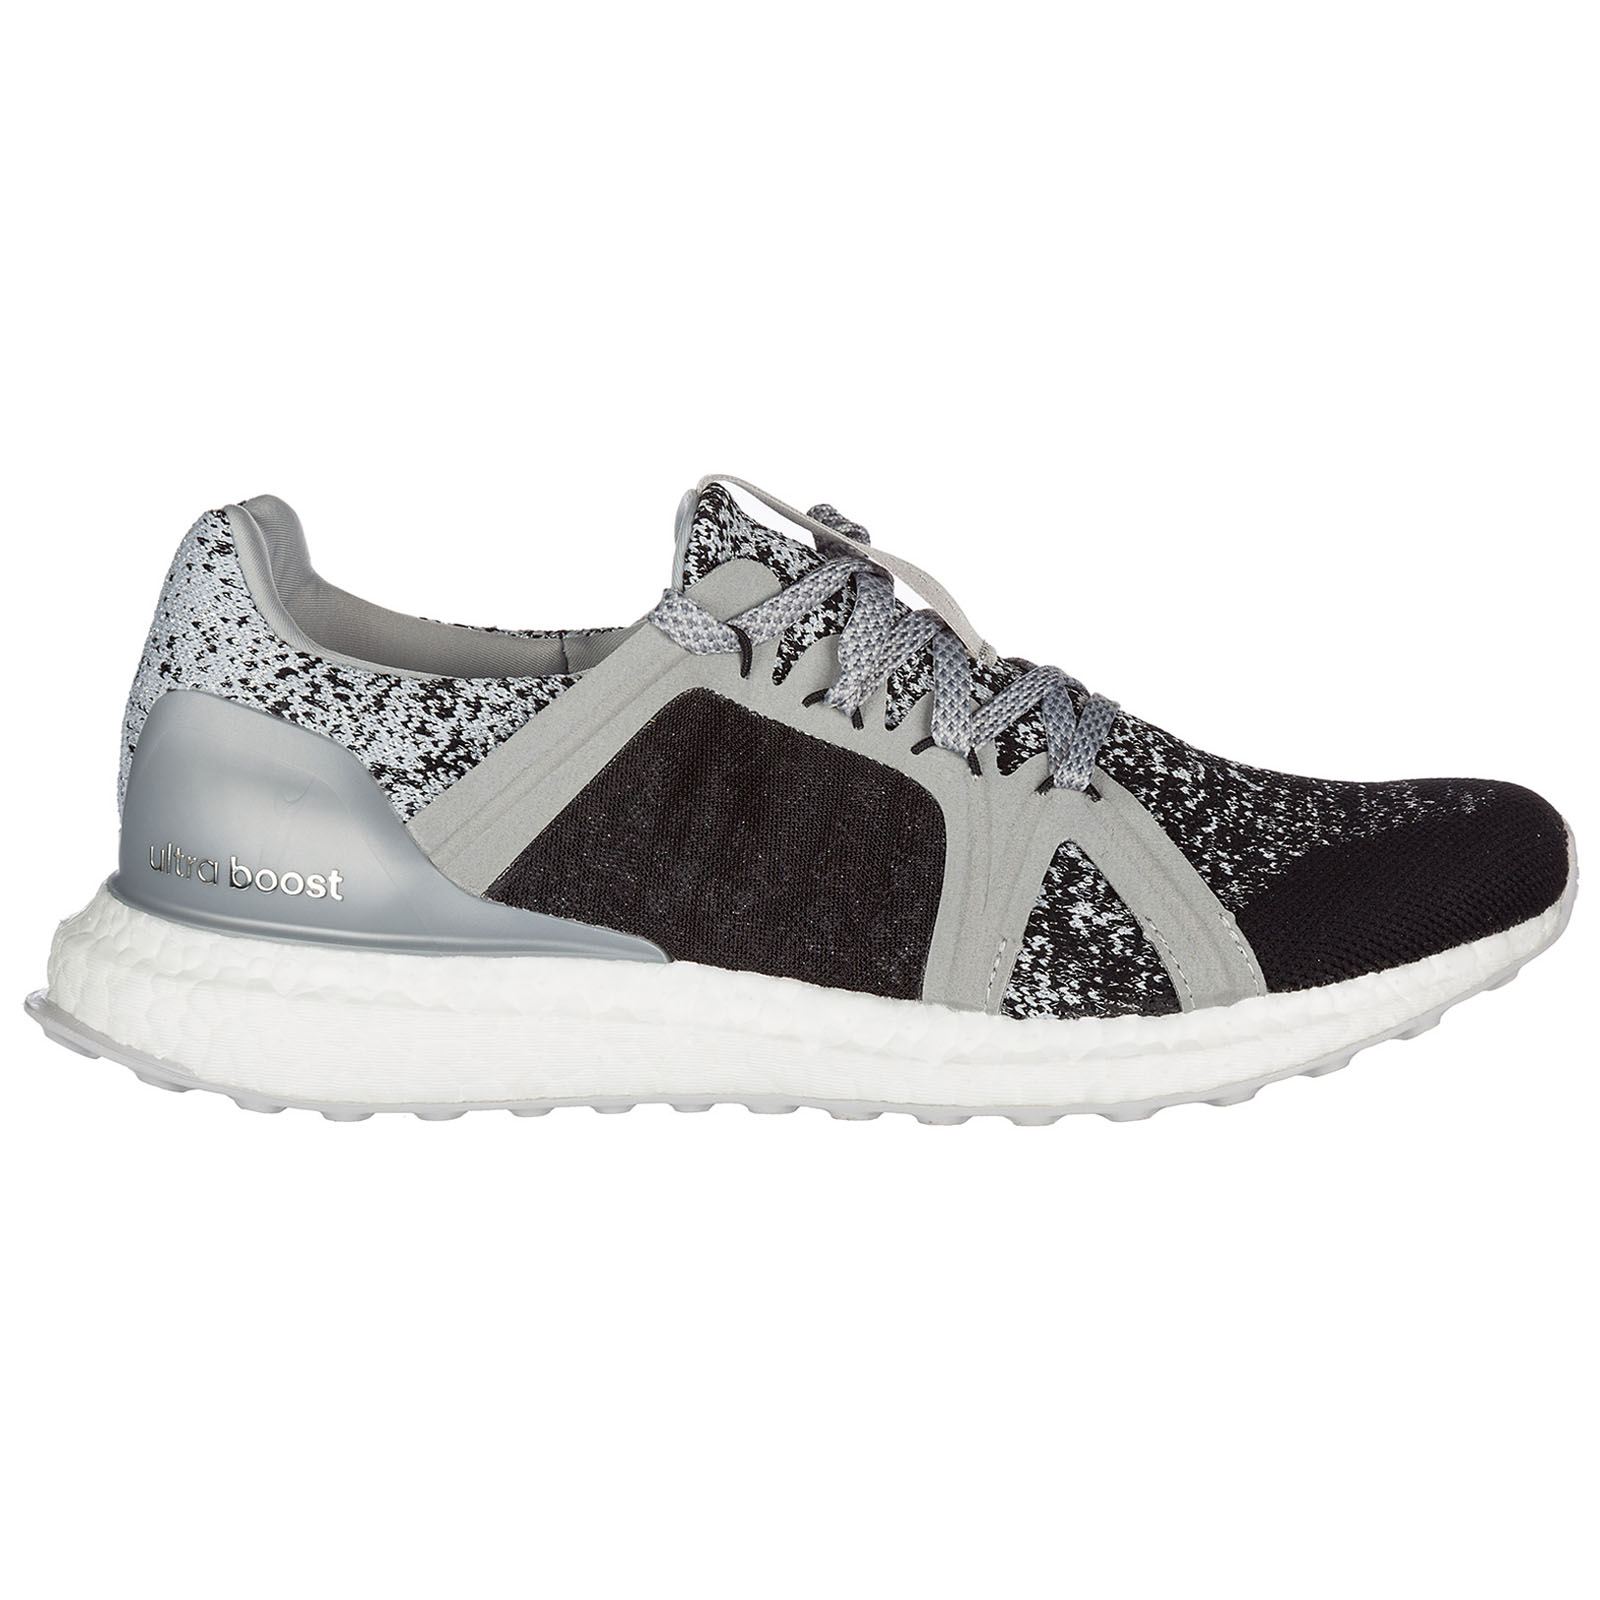 WOMEN'S SHOES TRAINERS SNEAKERS  ULTRA BOOST